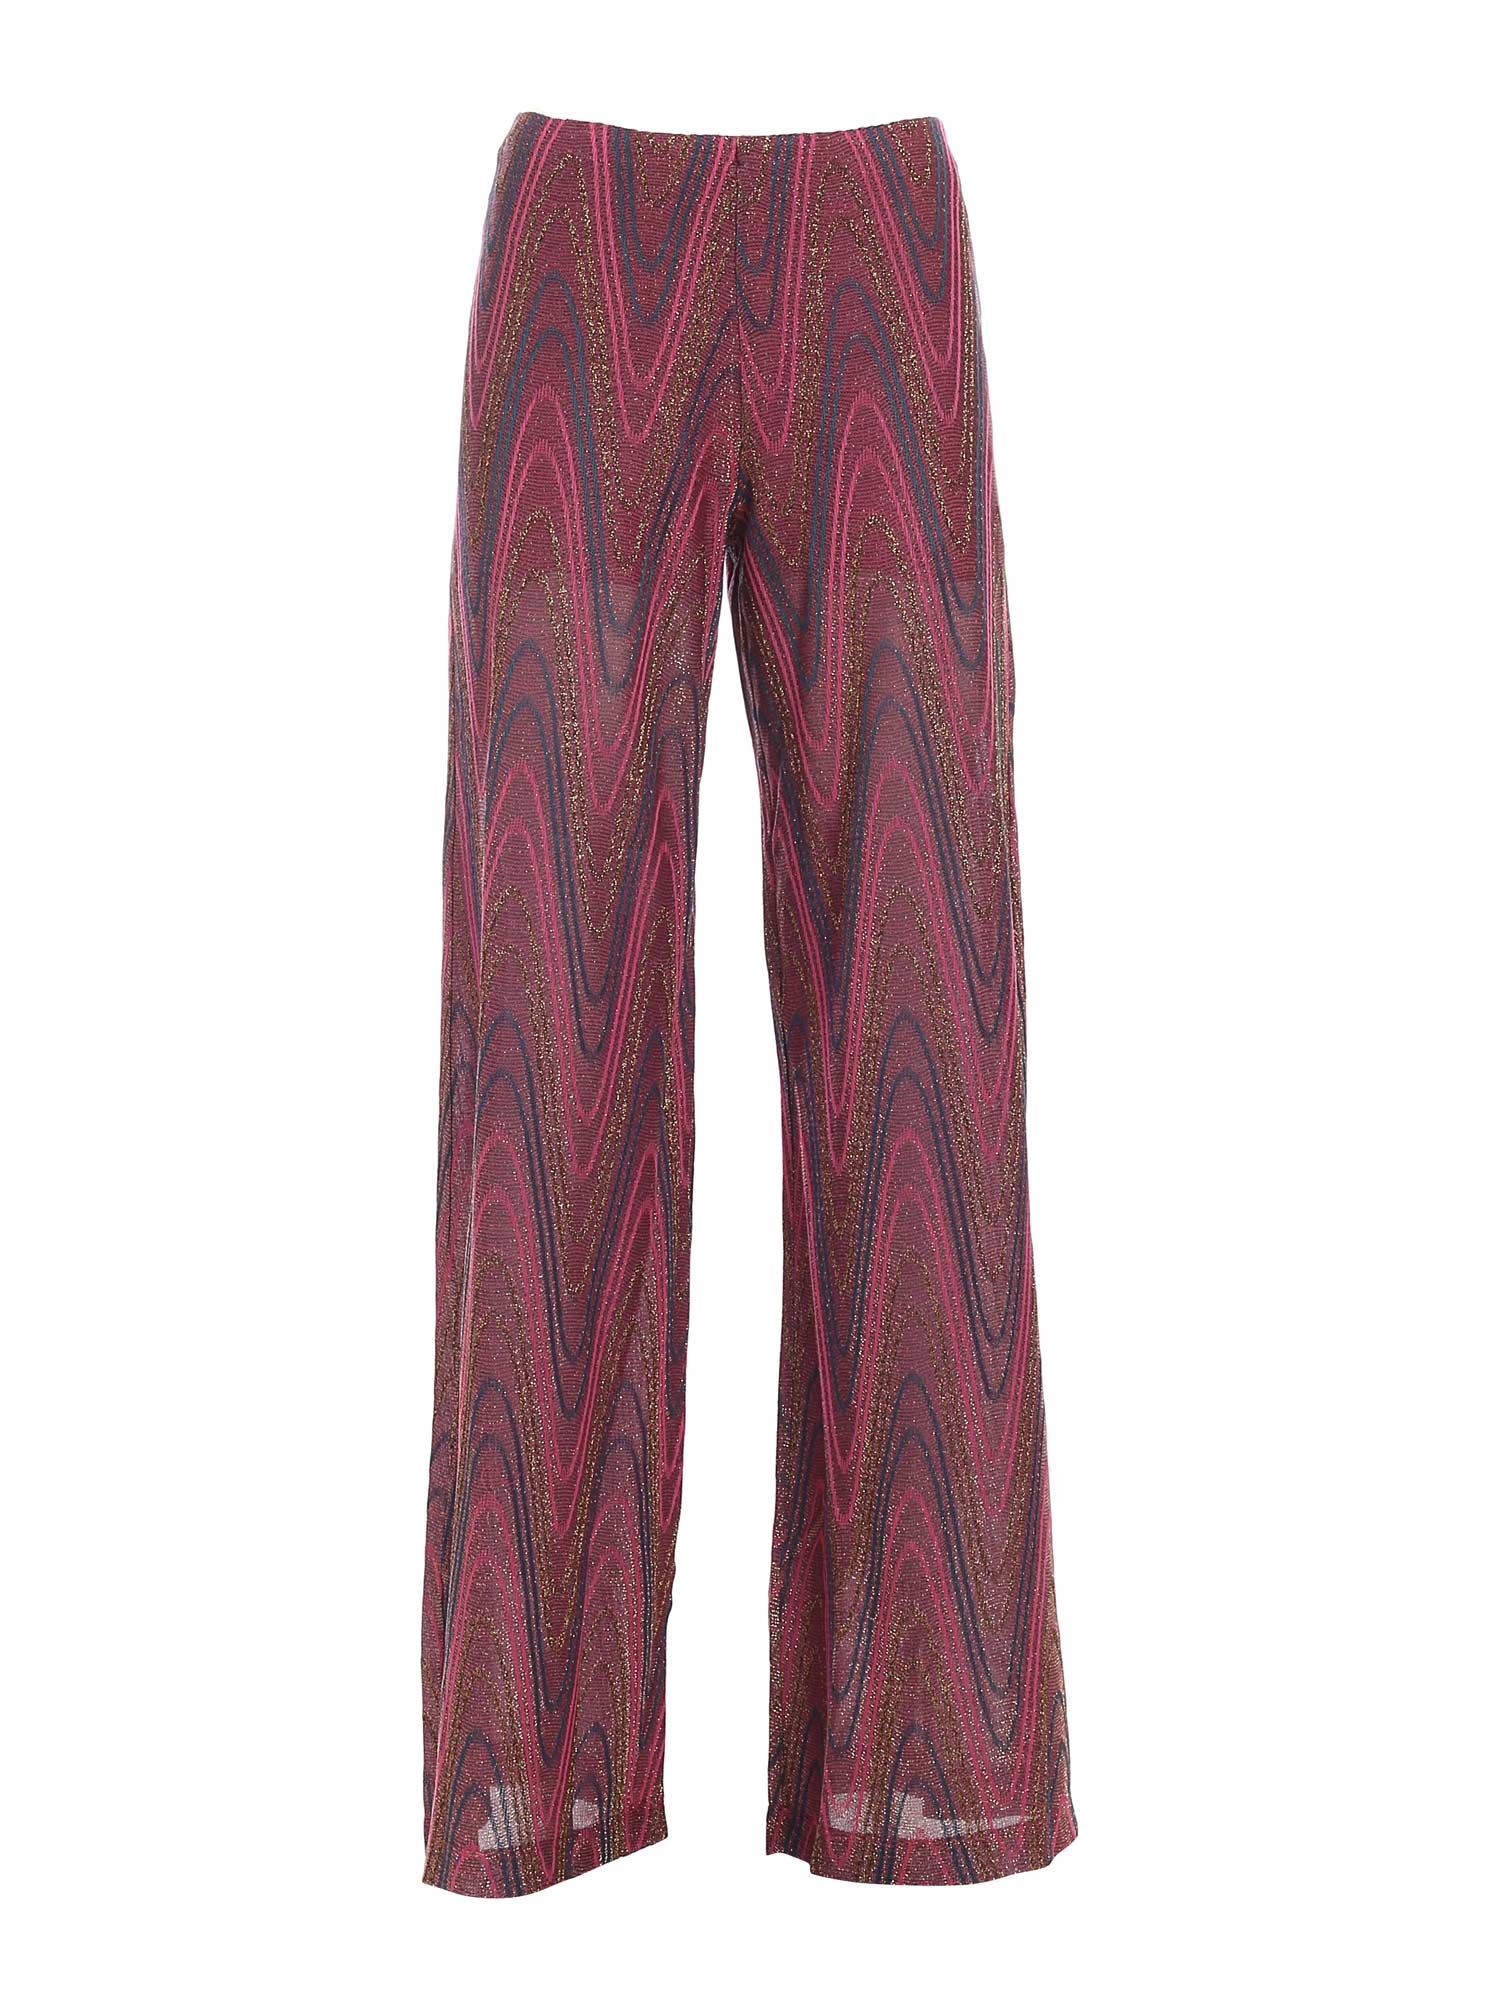 M Missoni LAM KNITTED PANTS IN PURPLE